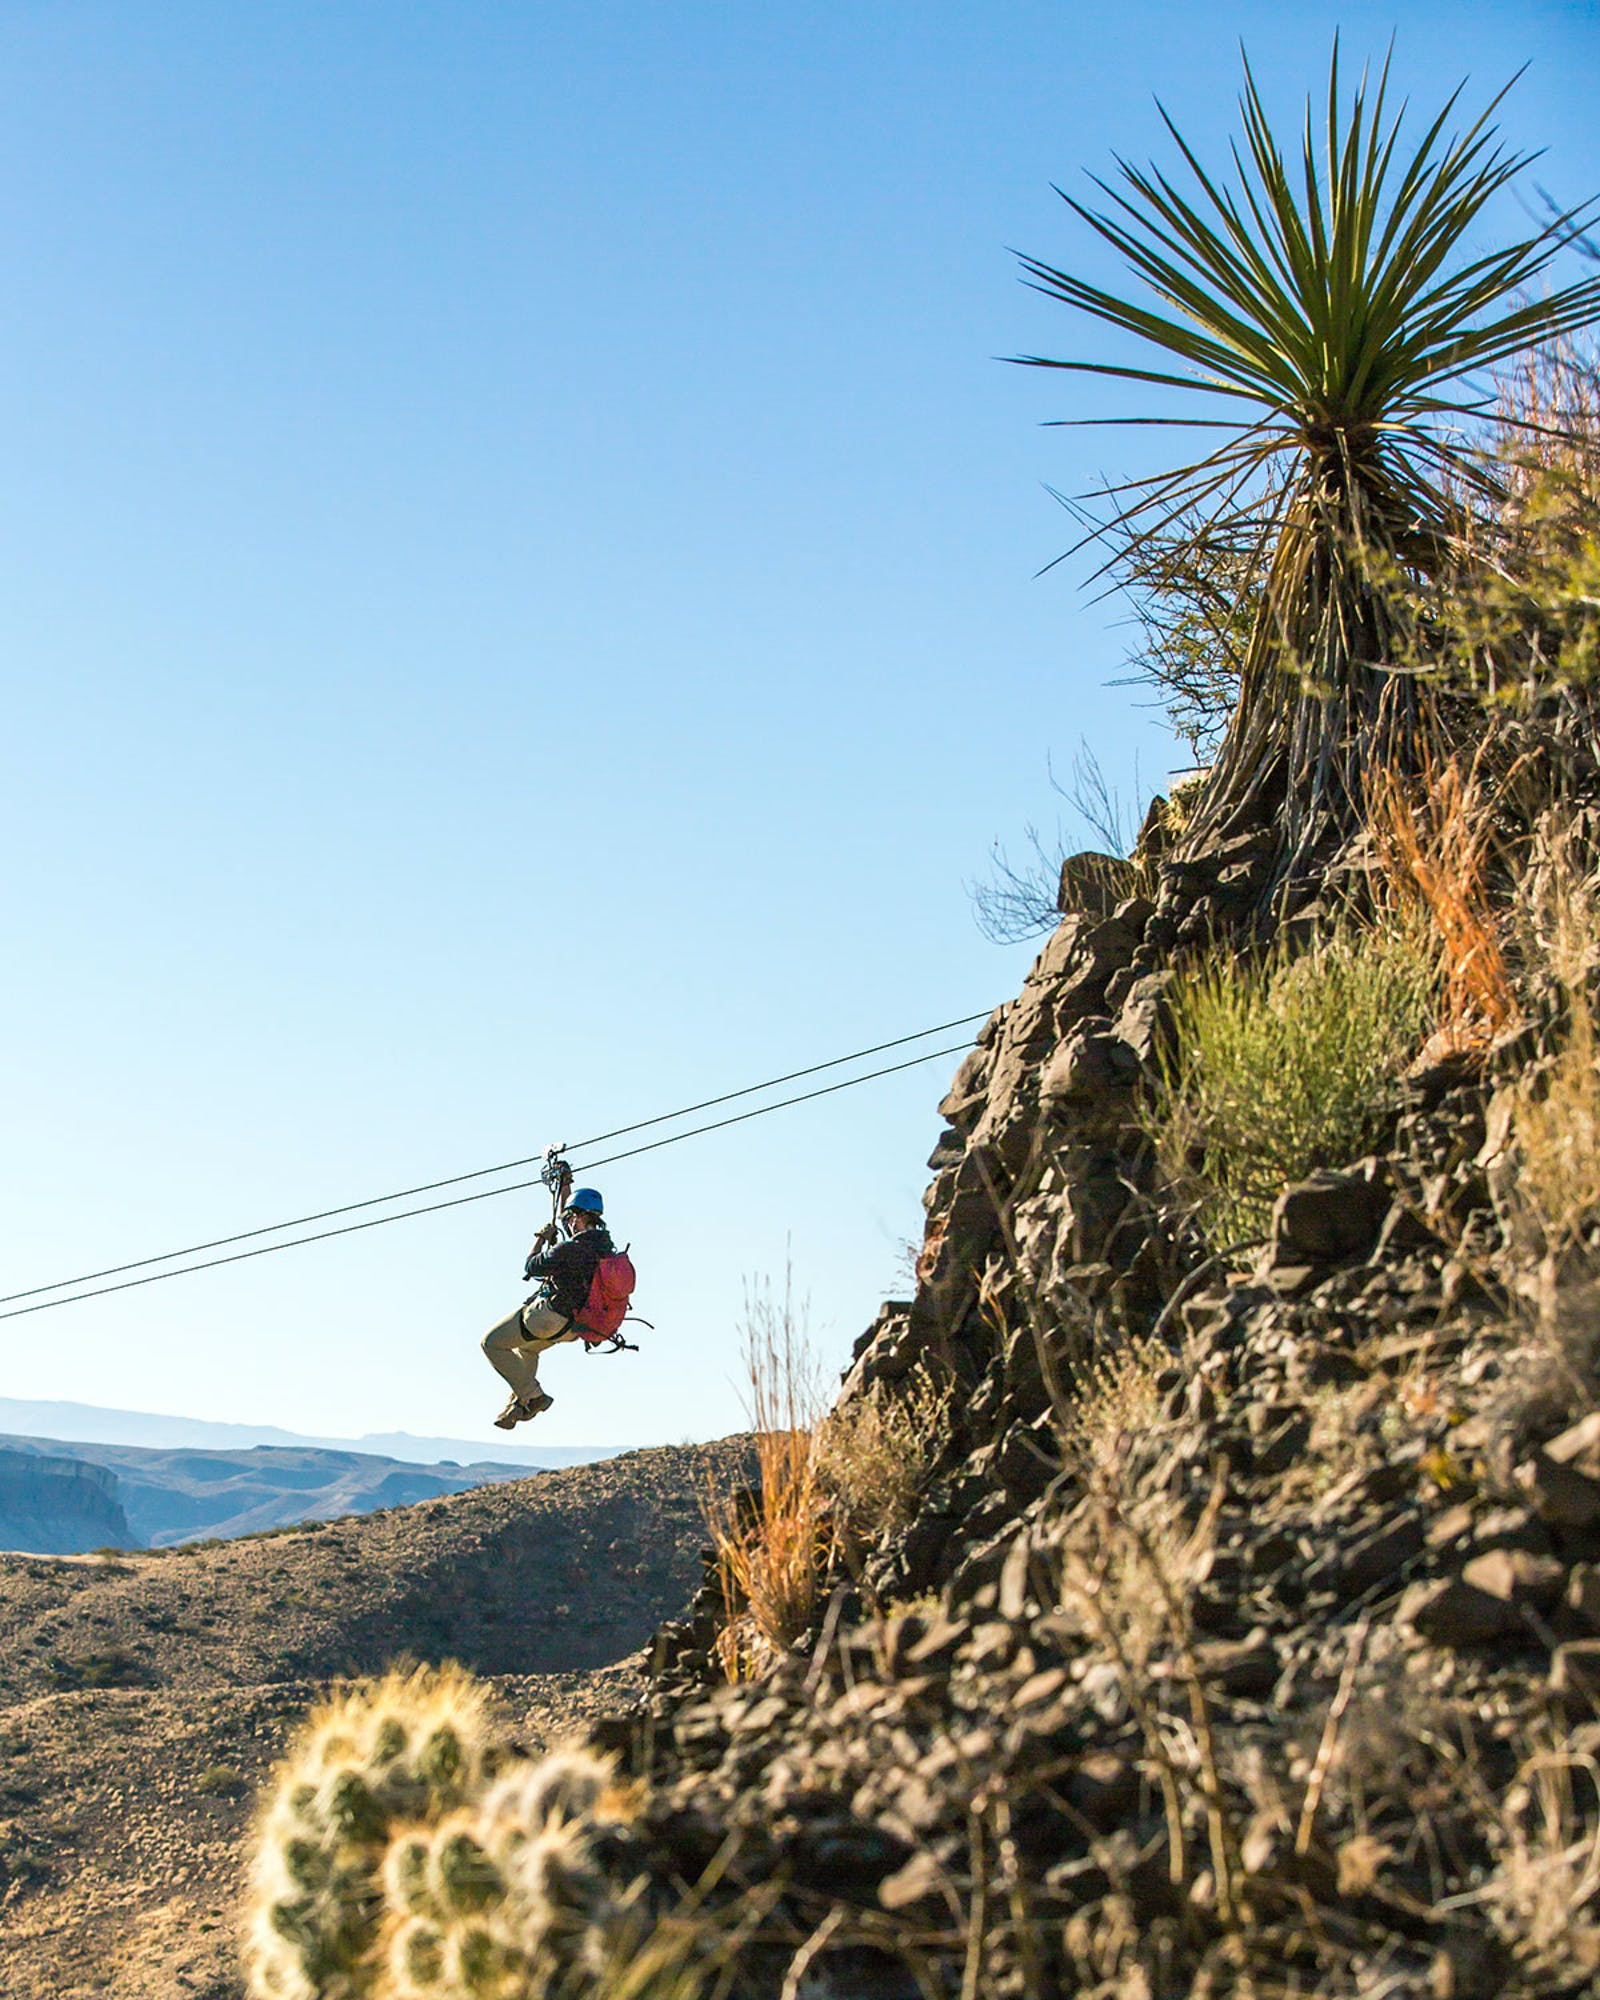 Zip lining in Big Bend